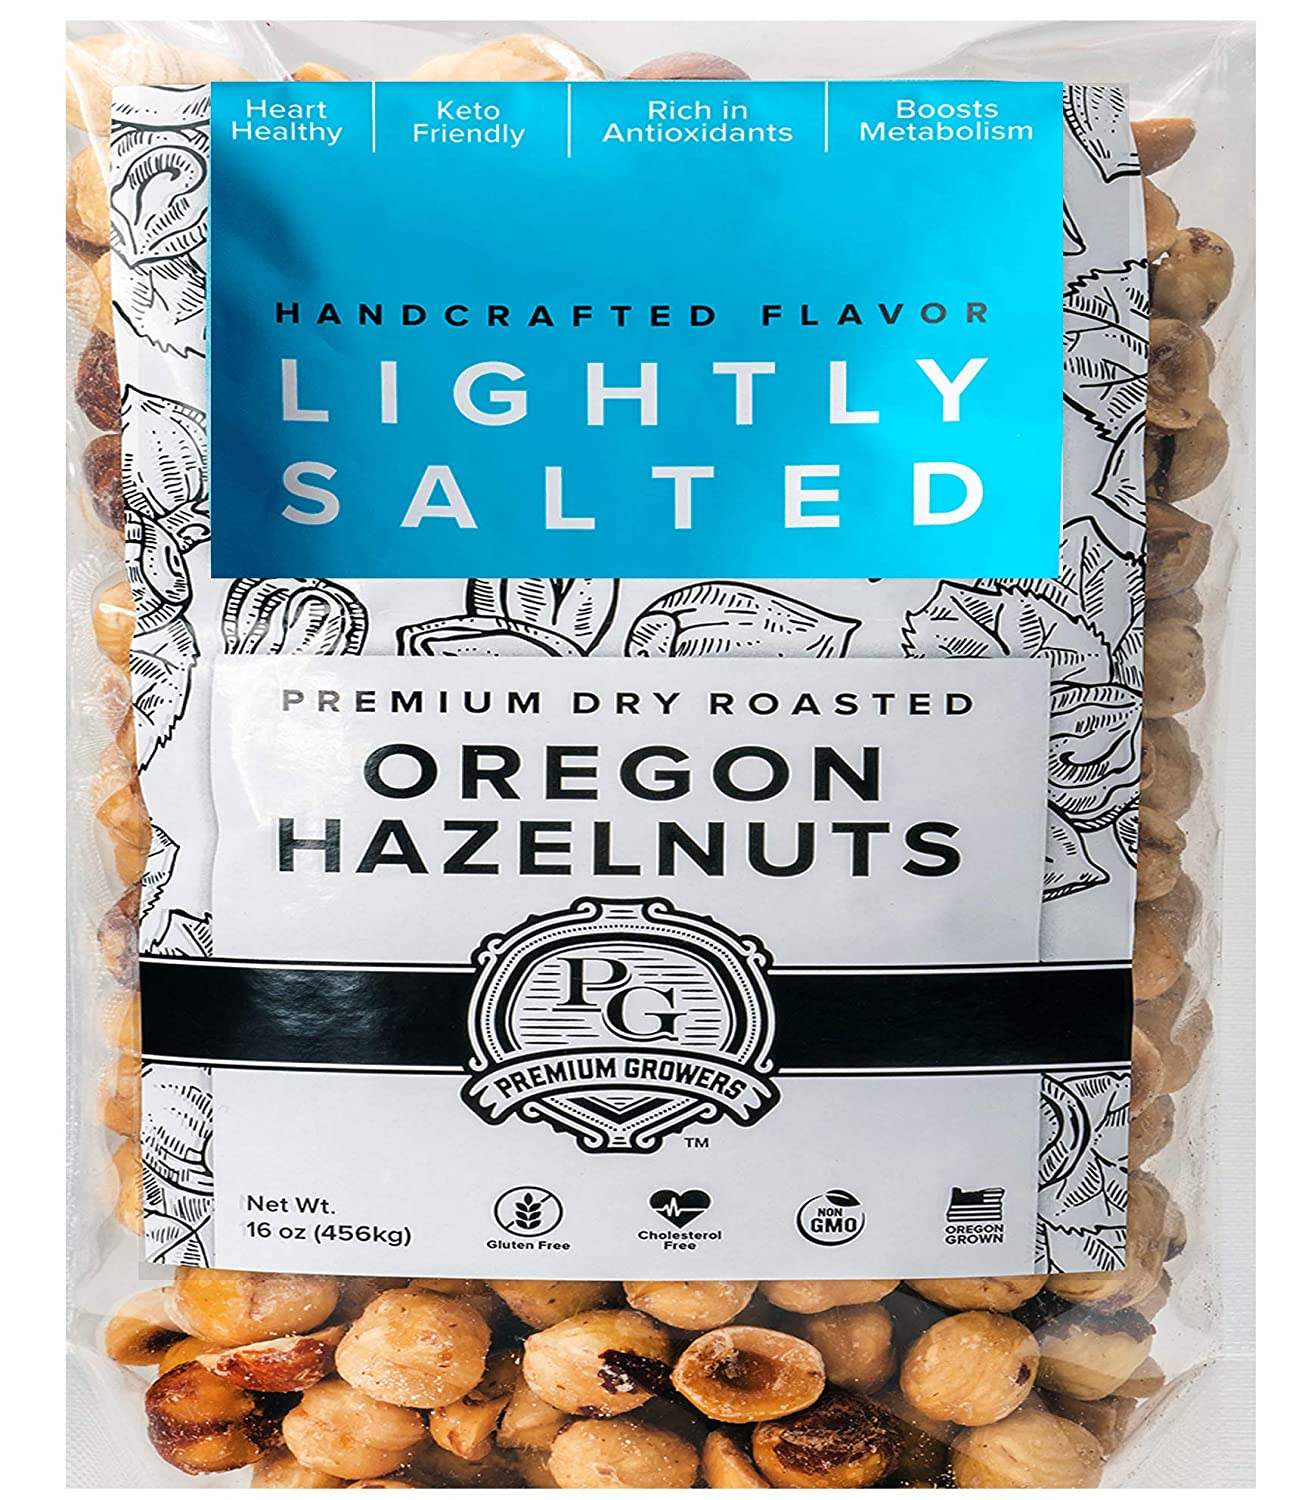 Oregon Farm To Table - Hazelnuts from Premium Growers - Dry Roasted - Lightly Salted – 1 LB